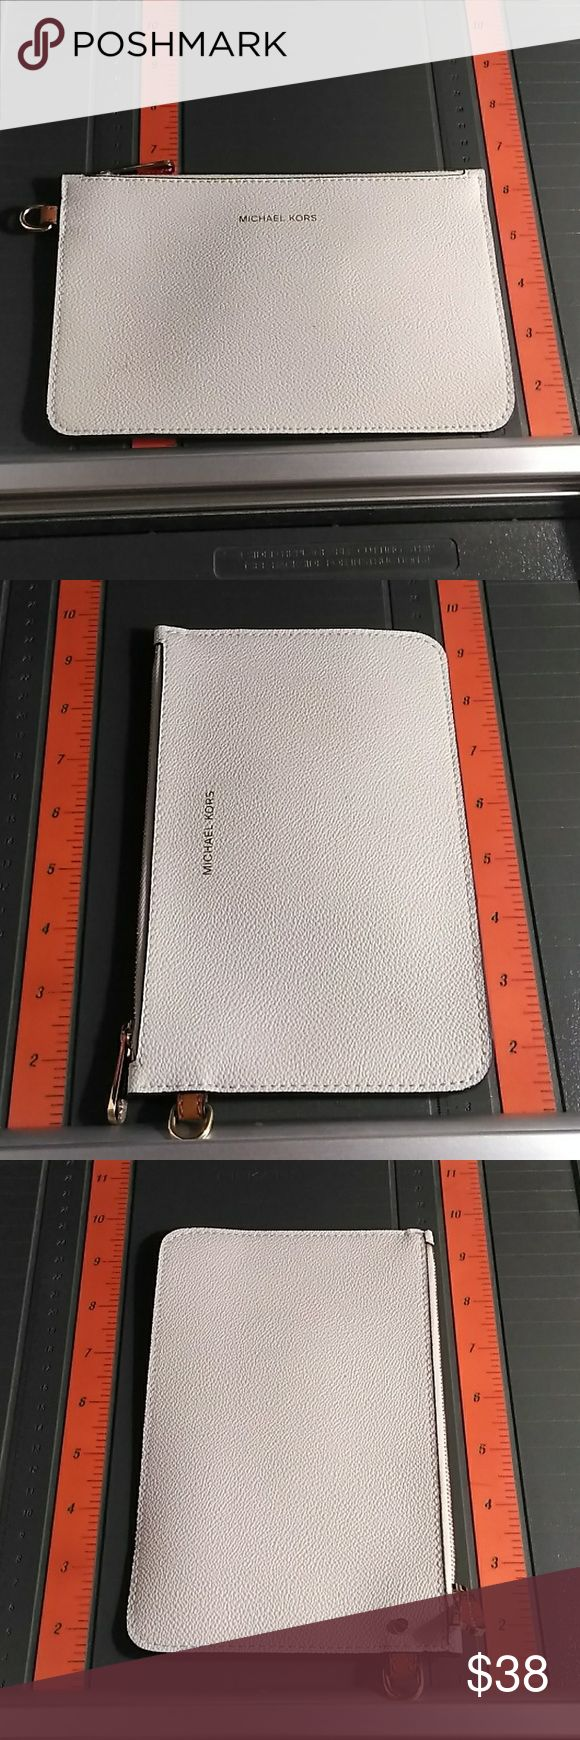 Michael Kors pouch This Ivory White pouch will go well with organizing your receipts coupons makeup or even just put your cell phone in it so it does not get scratched in your purse 😉 Michael Kors Bags Travel Bags